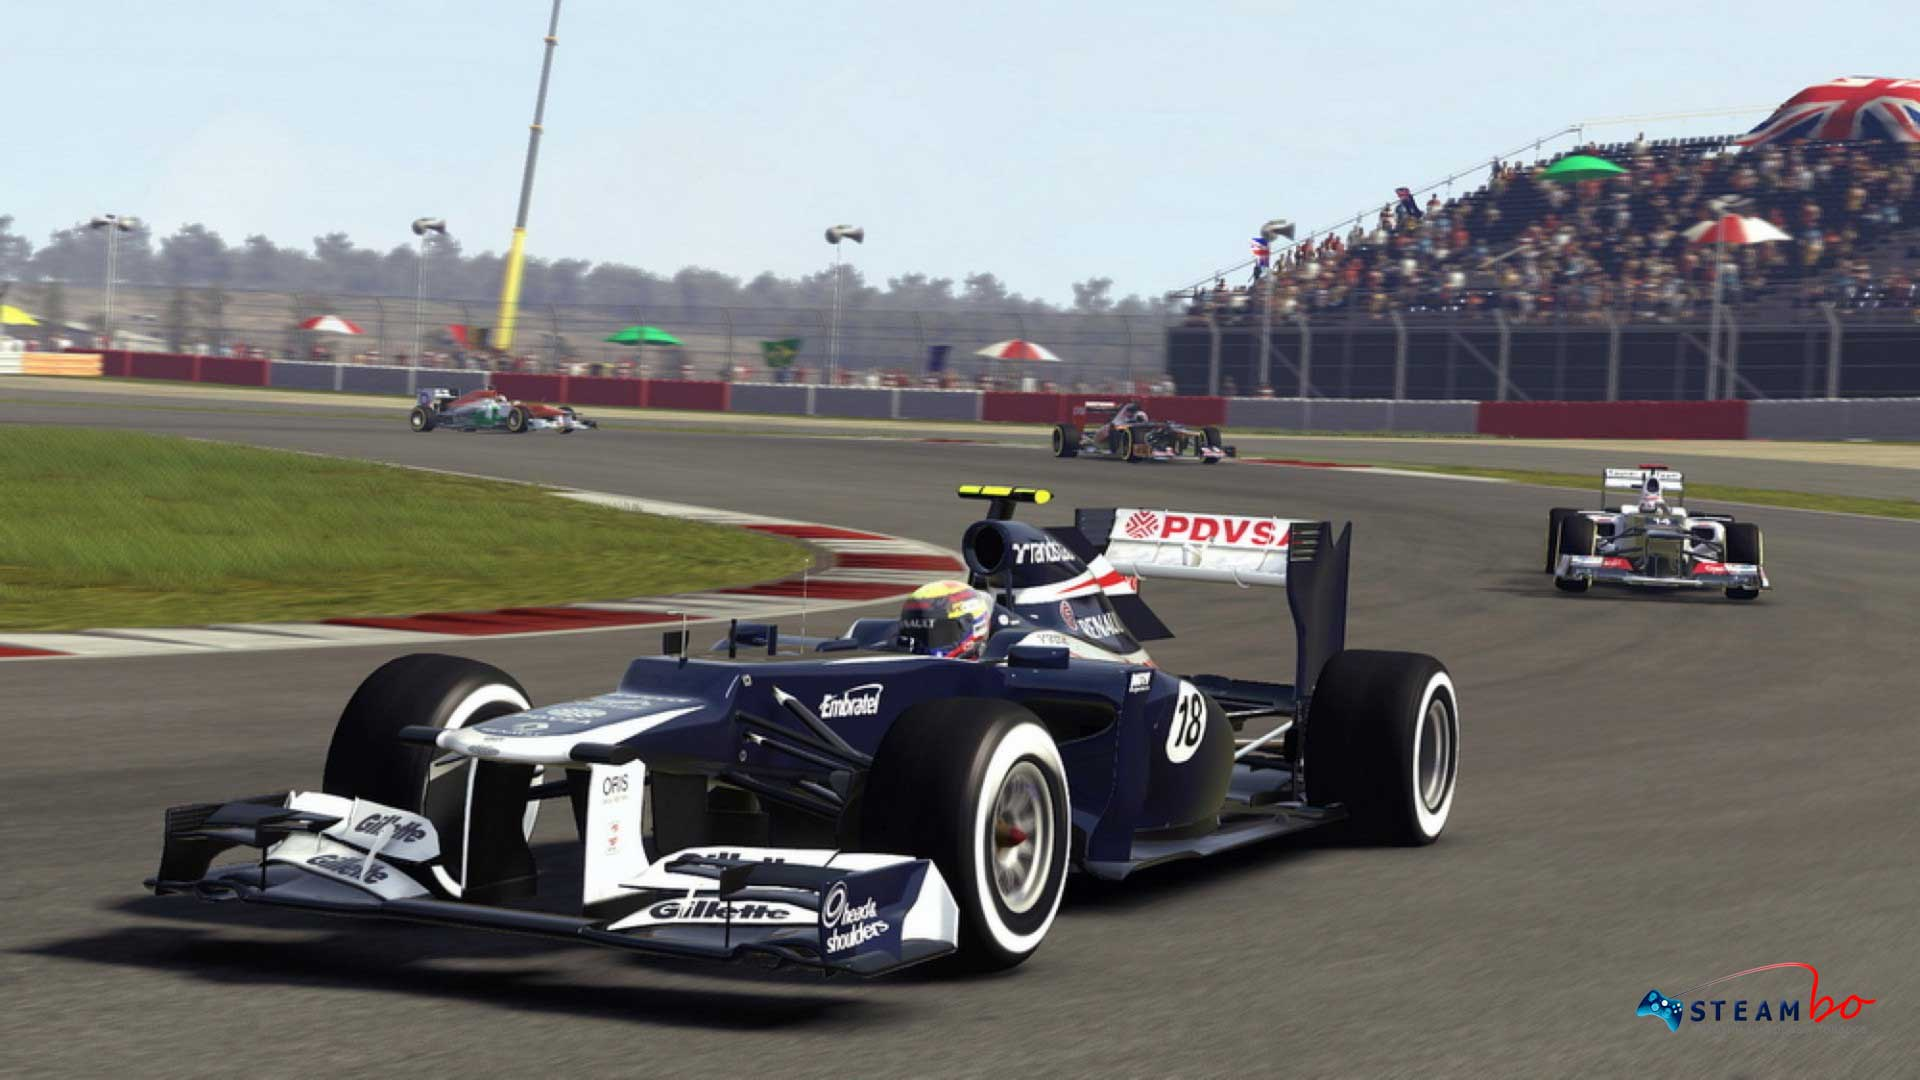 F1 2013: classic edition is the definitive formula one video game for this generation of consoles expanding upon the